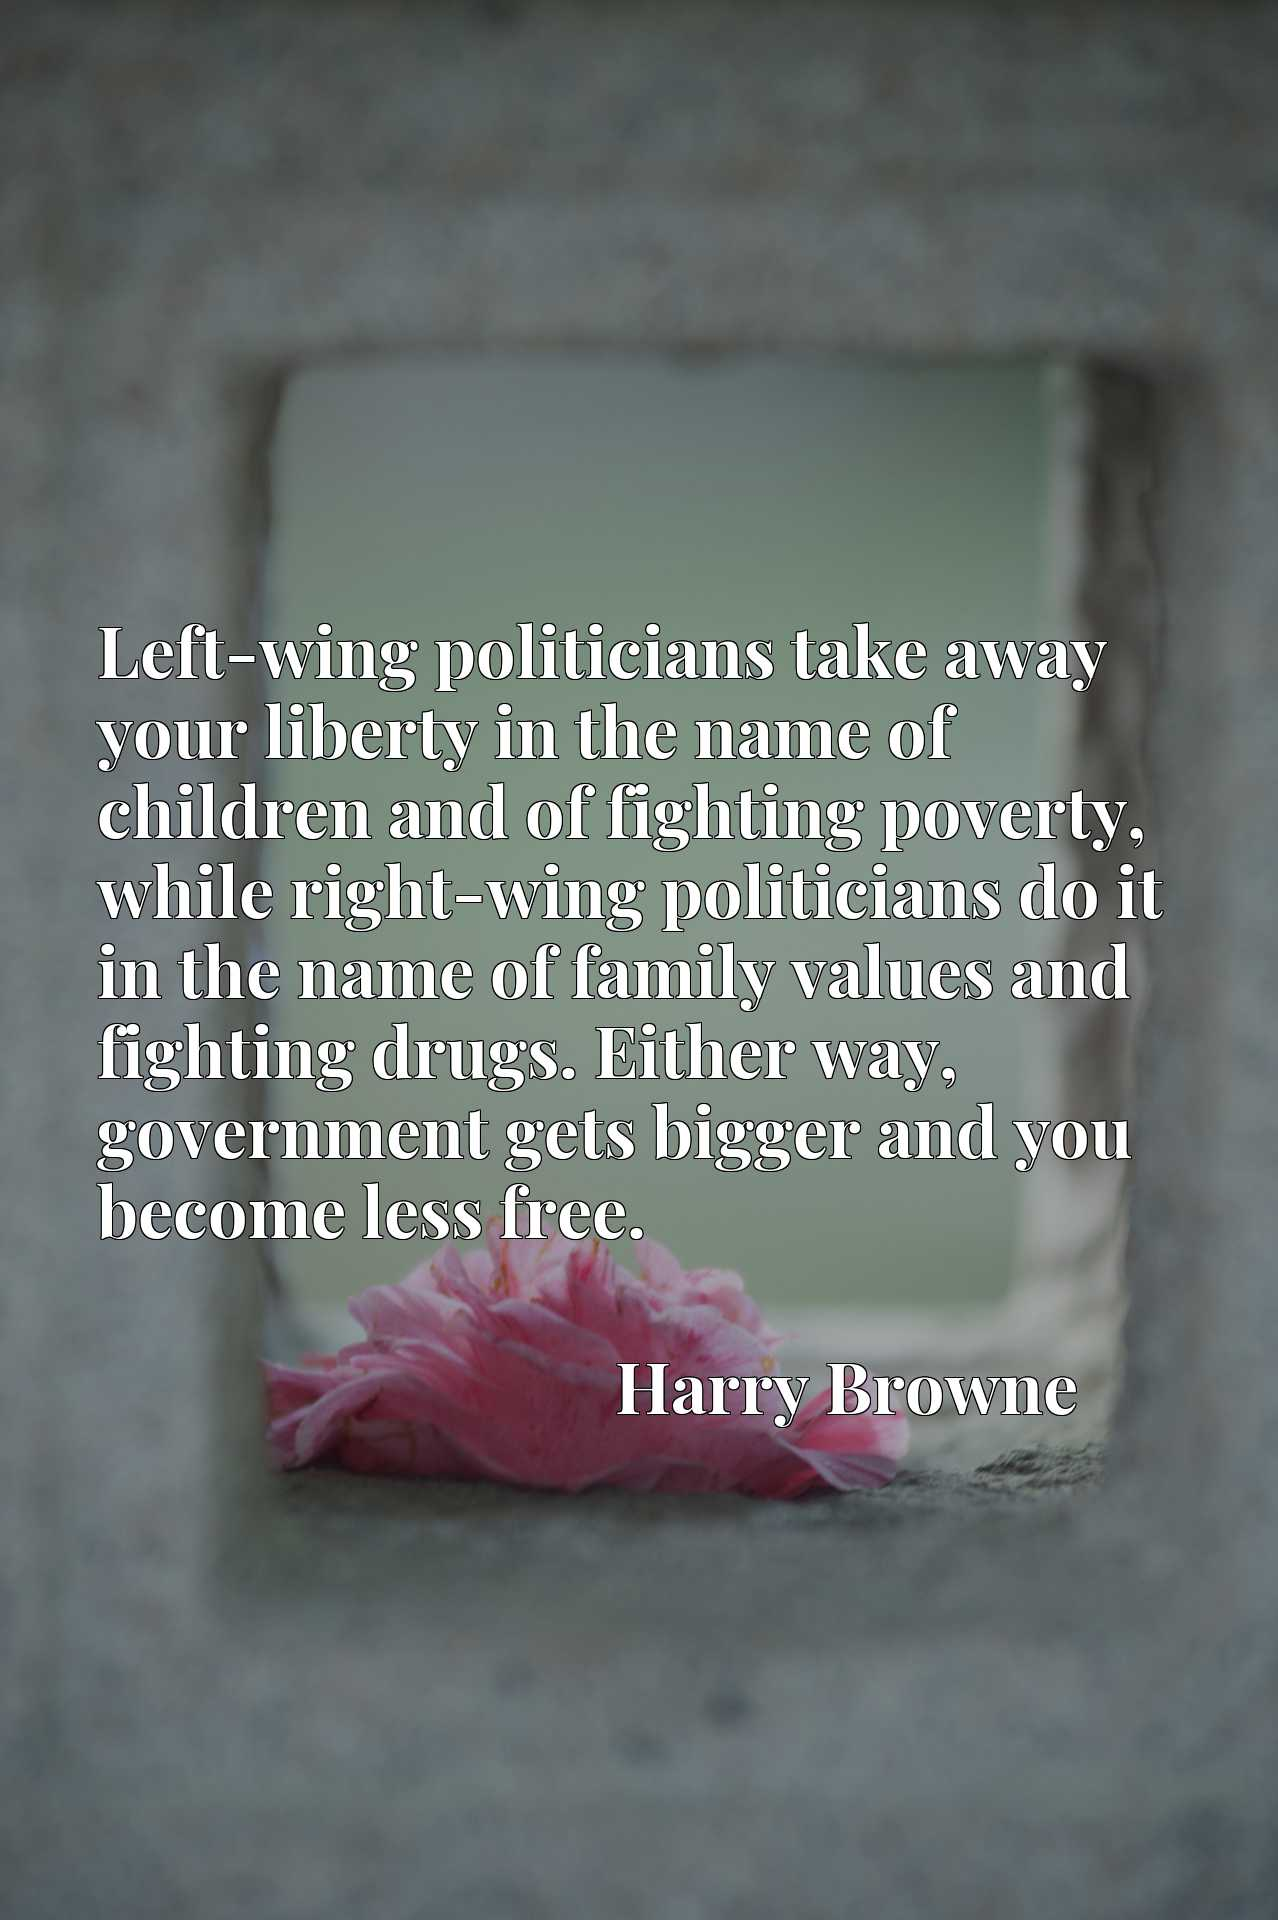 Left-wing politicians take away your liberty in the name of children and of fighting poverty, while right-wing politicians do it in the name of family values and fighting drugs. Either way, government gets bigger and you become less free.